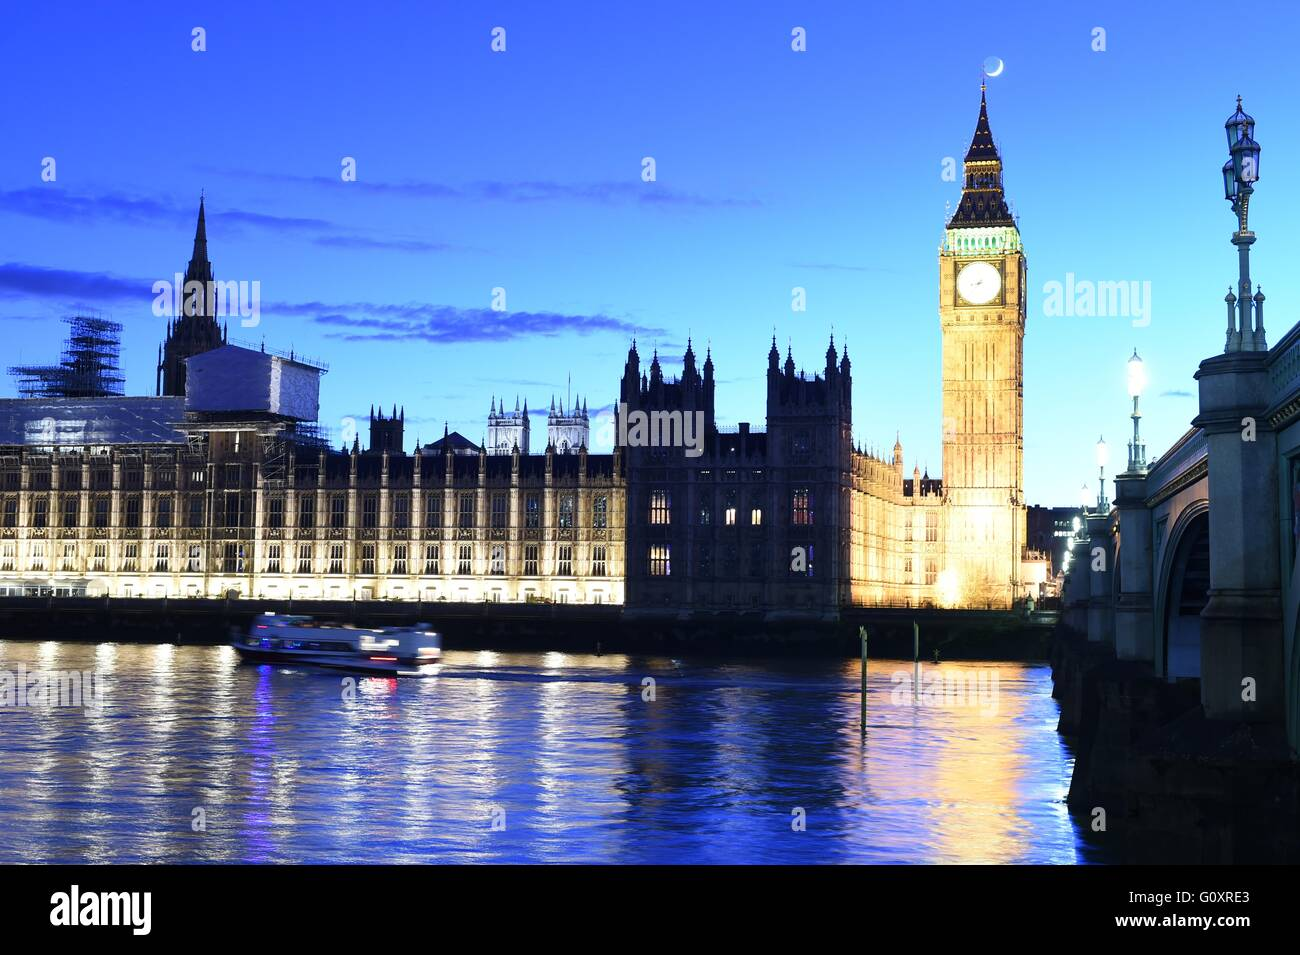 Big Ben, Westminster Bridge, River Thames and Houses of Parliament in London UK - Stock Image